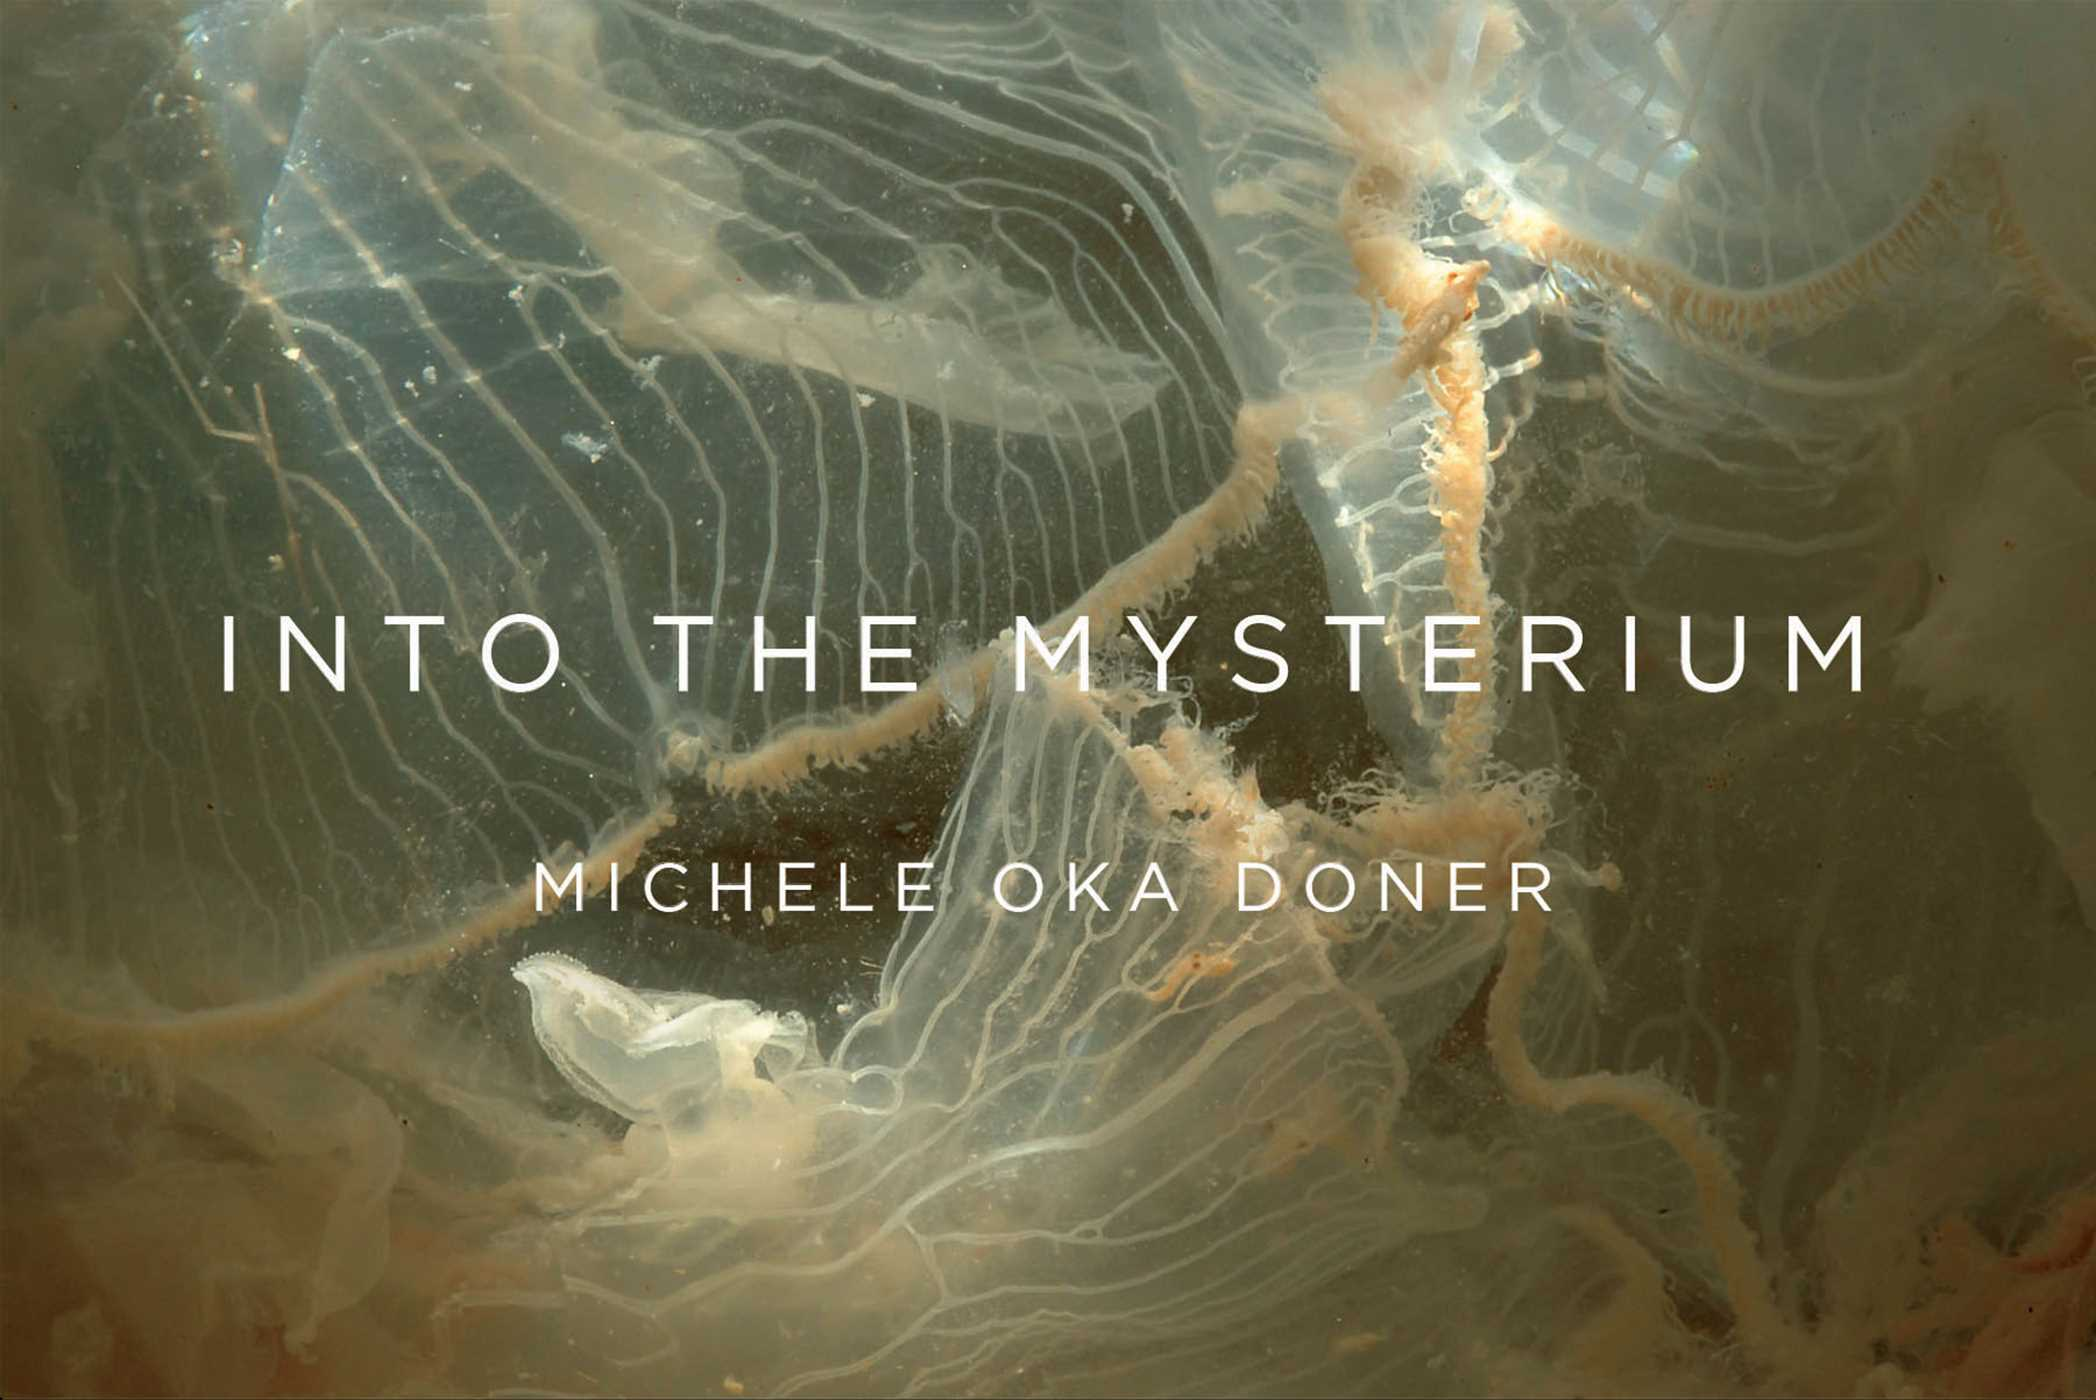 Into the mysterium 9781942872993 hr